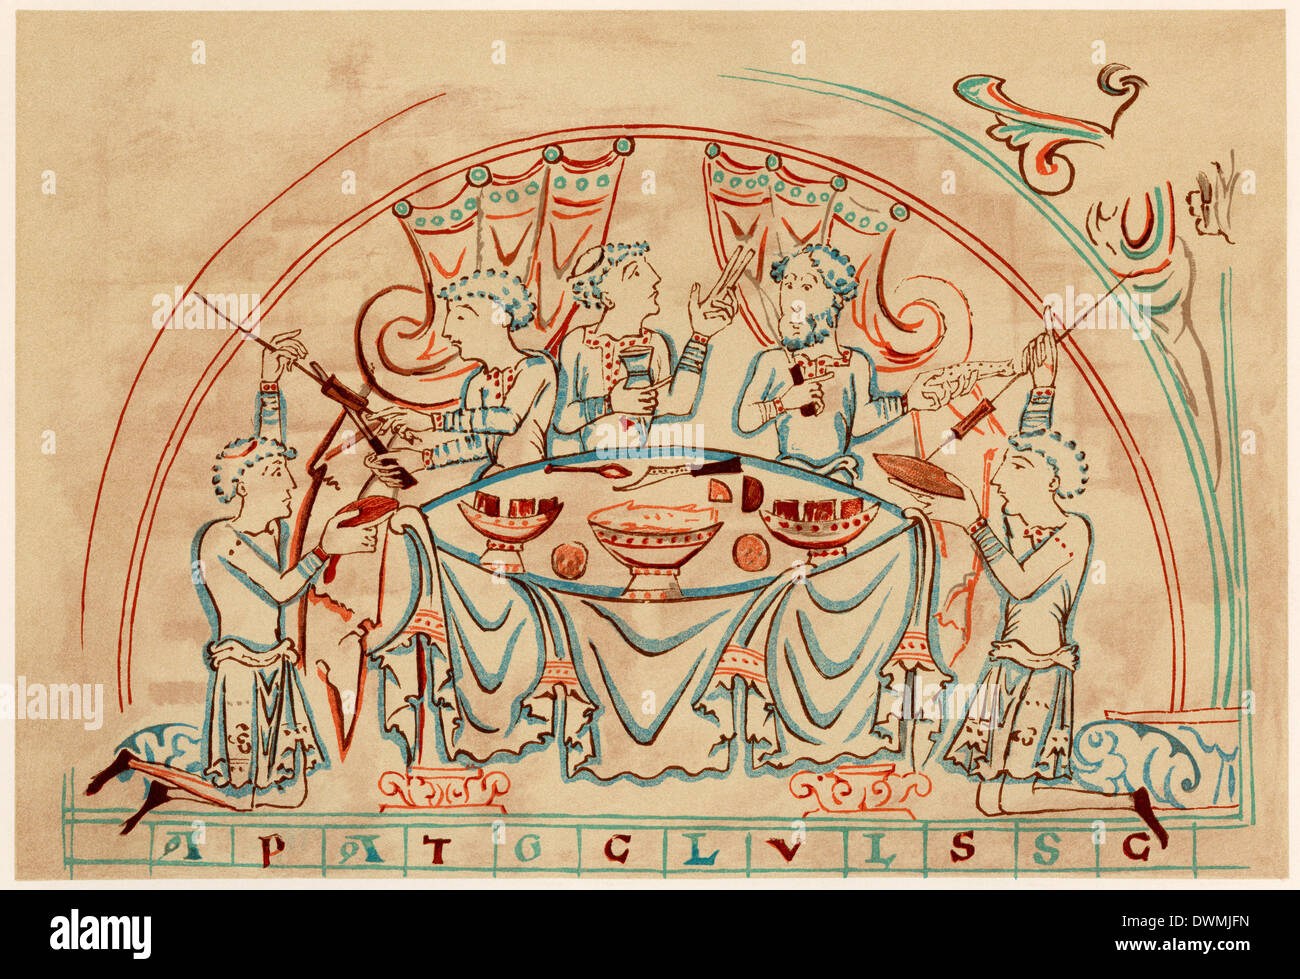 Medieval banquet, 11th century. Printed color lithograph - Stock Image